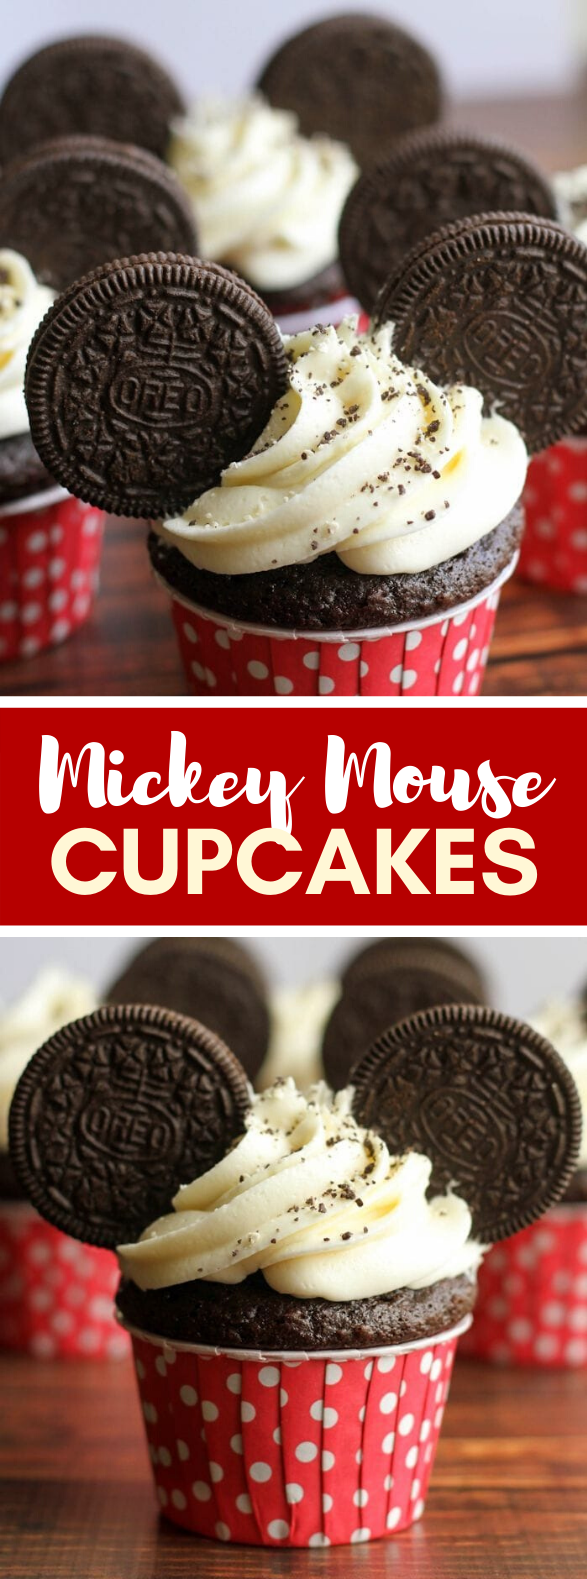 MICKEY MOUSE CUPCAKES #desserts #cake